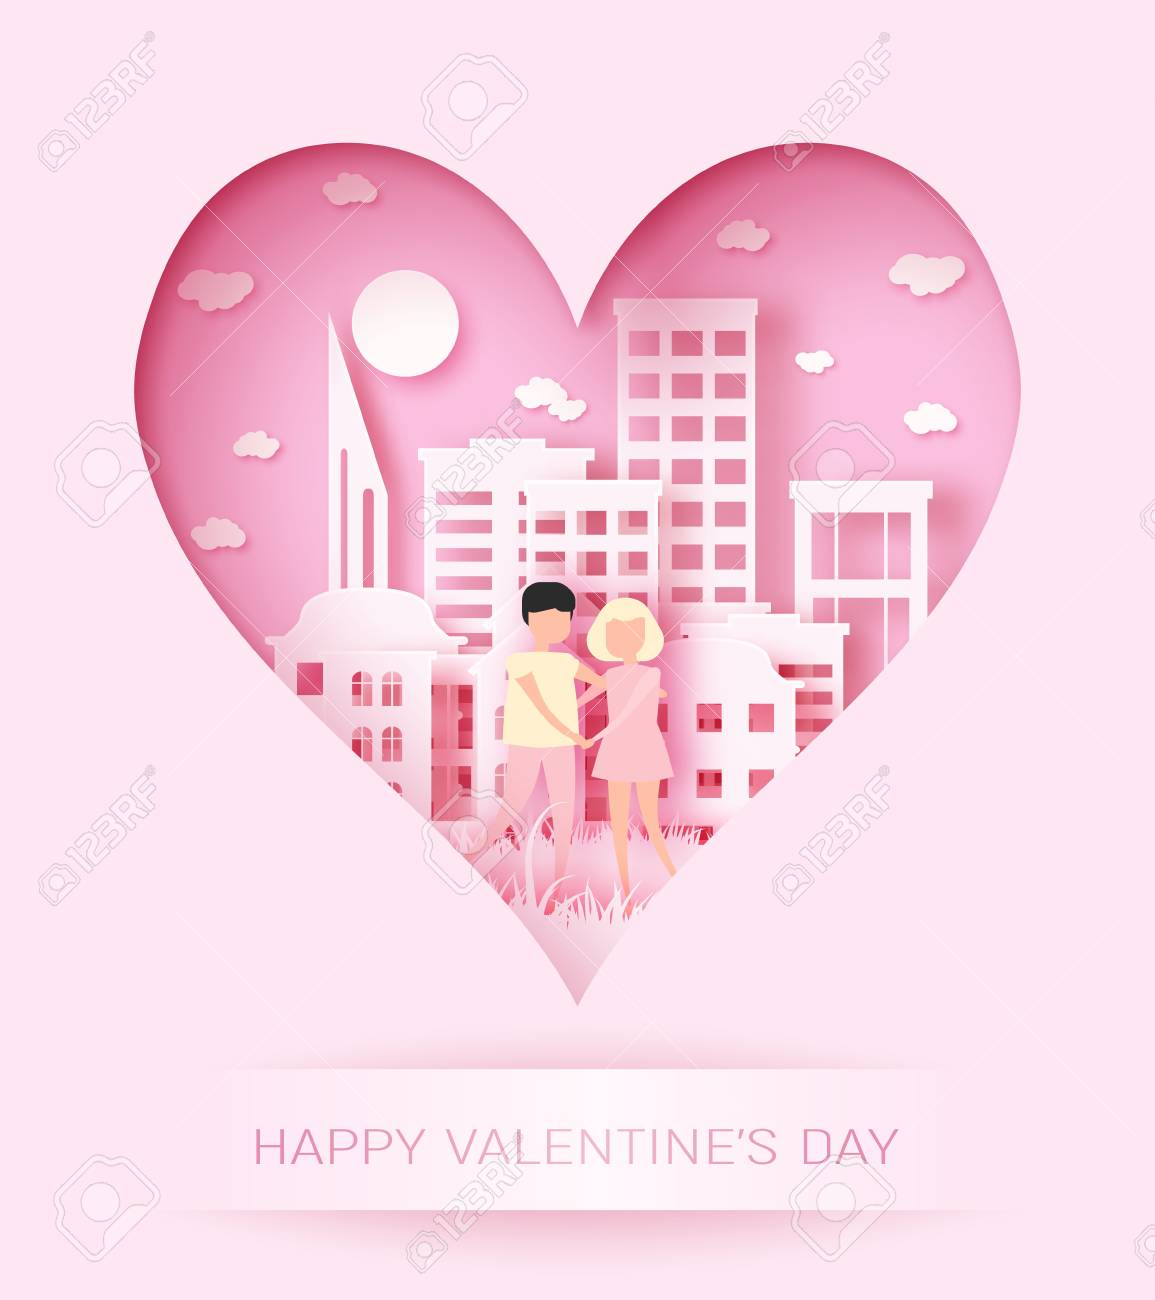 Happy Valentine S Day 3d Abstract Paper Cut Illustration Of Colorful